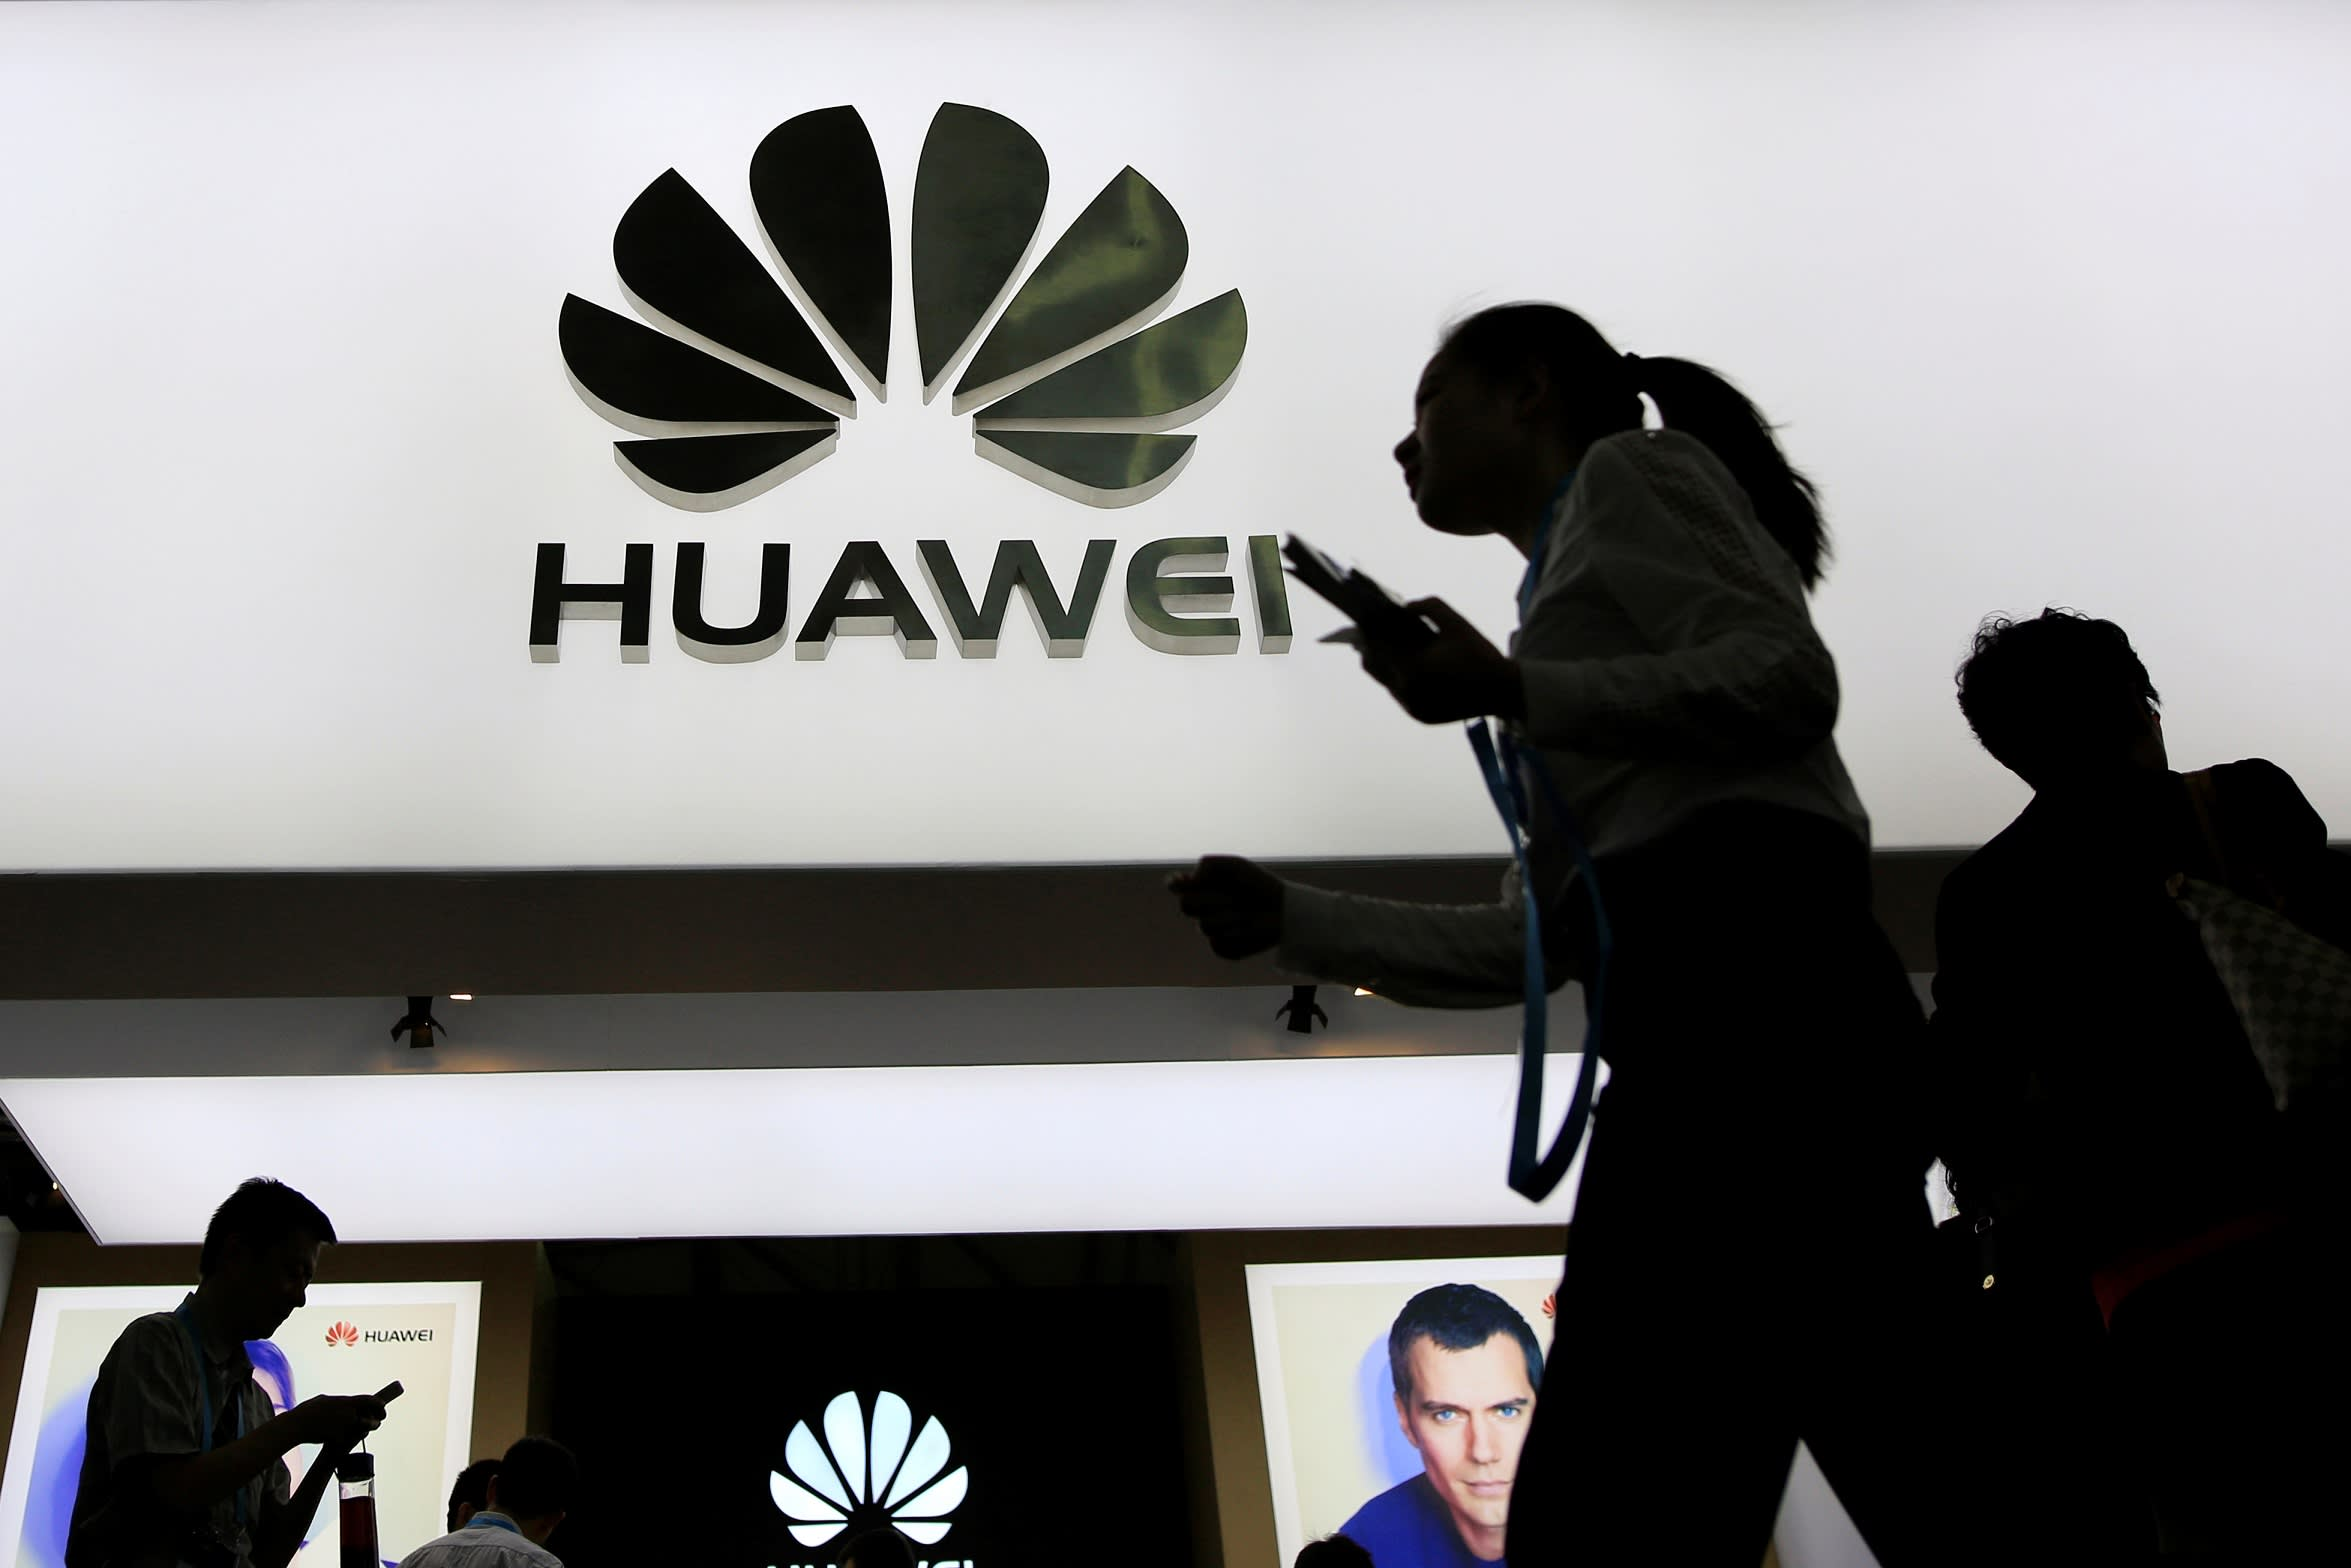 Huawei's hefty paychecks make a splash in Japan - Nikkei